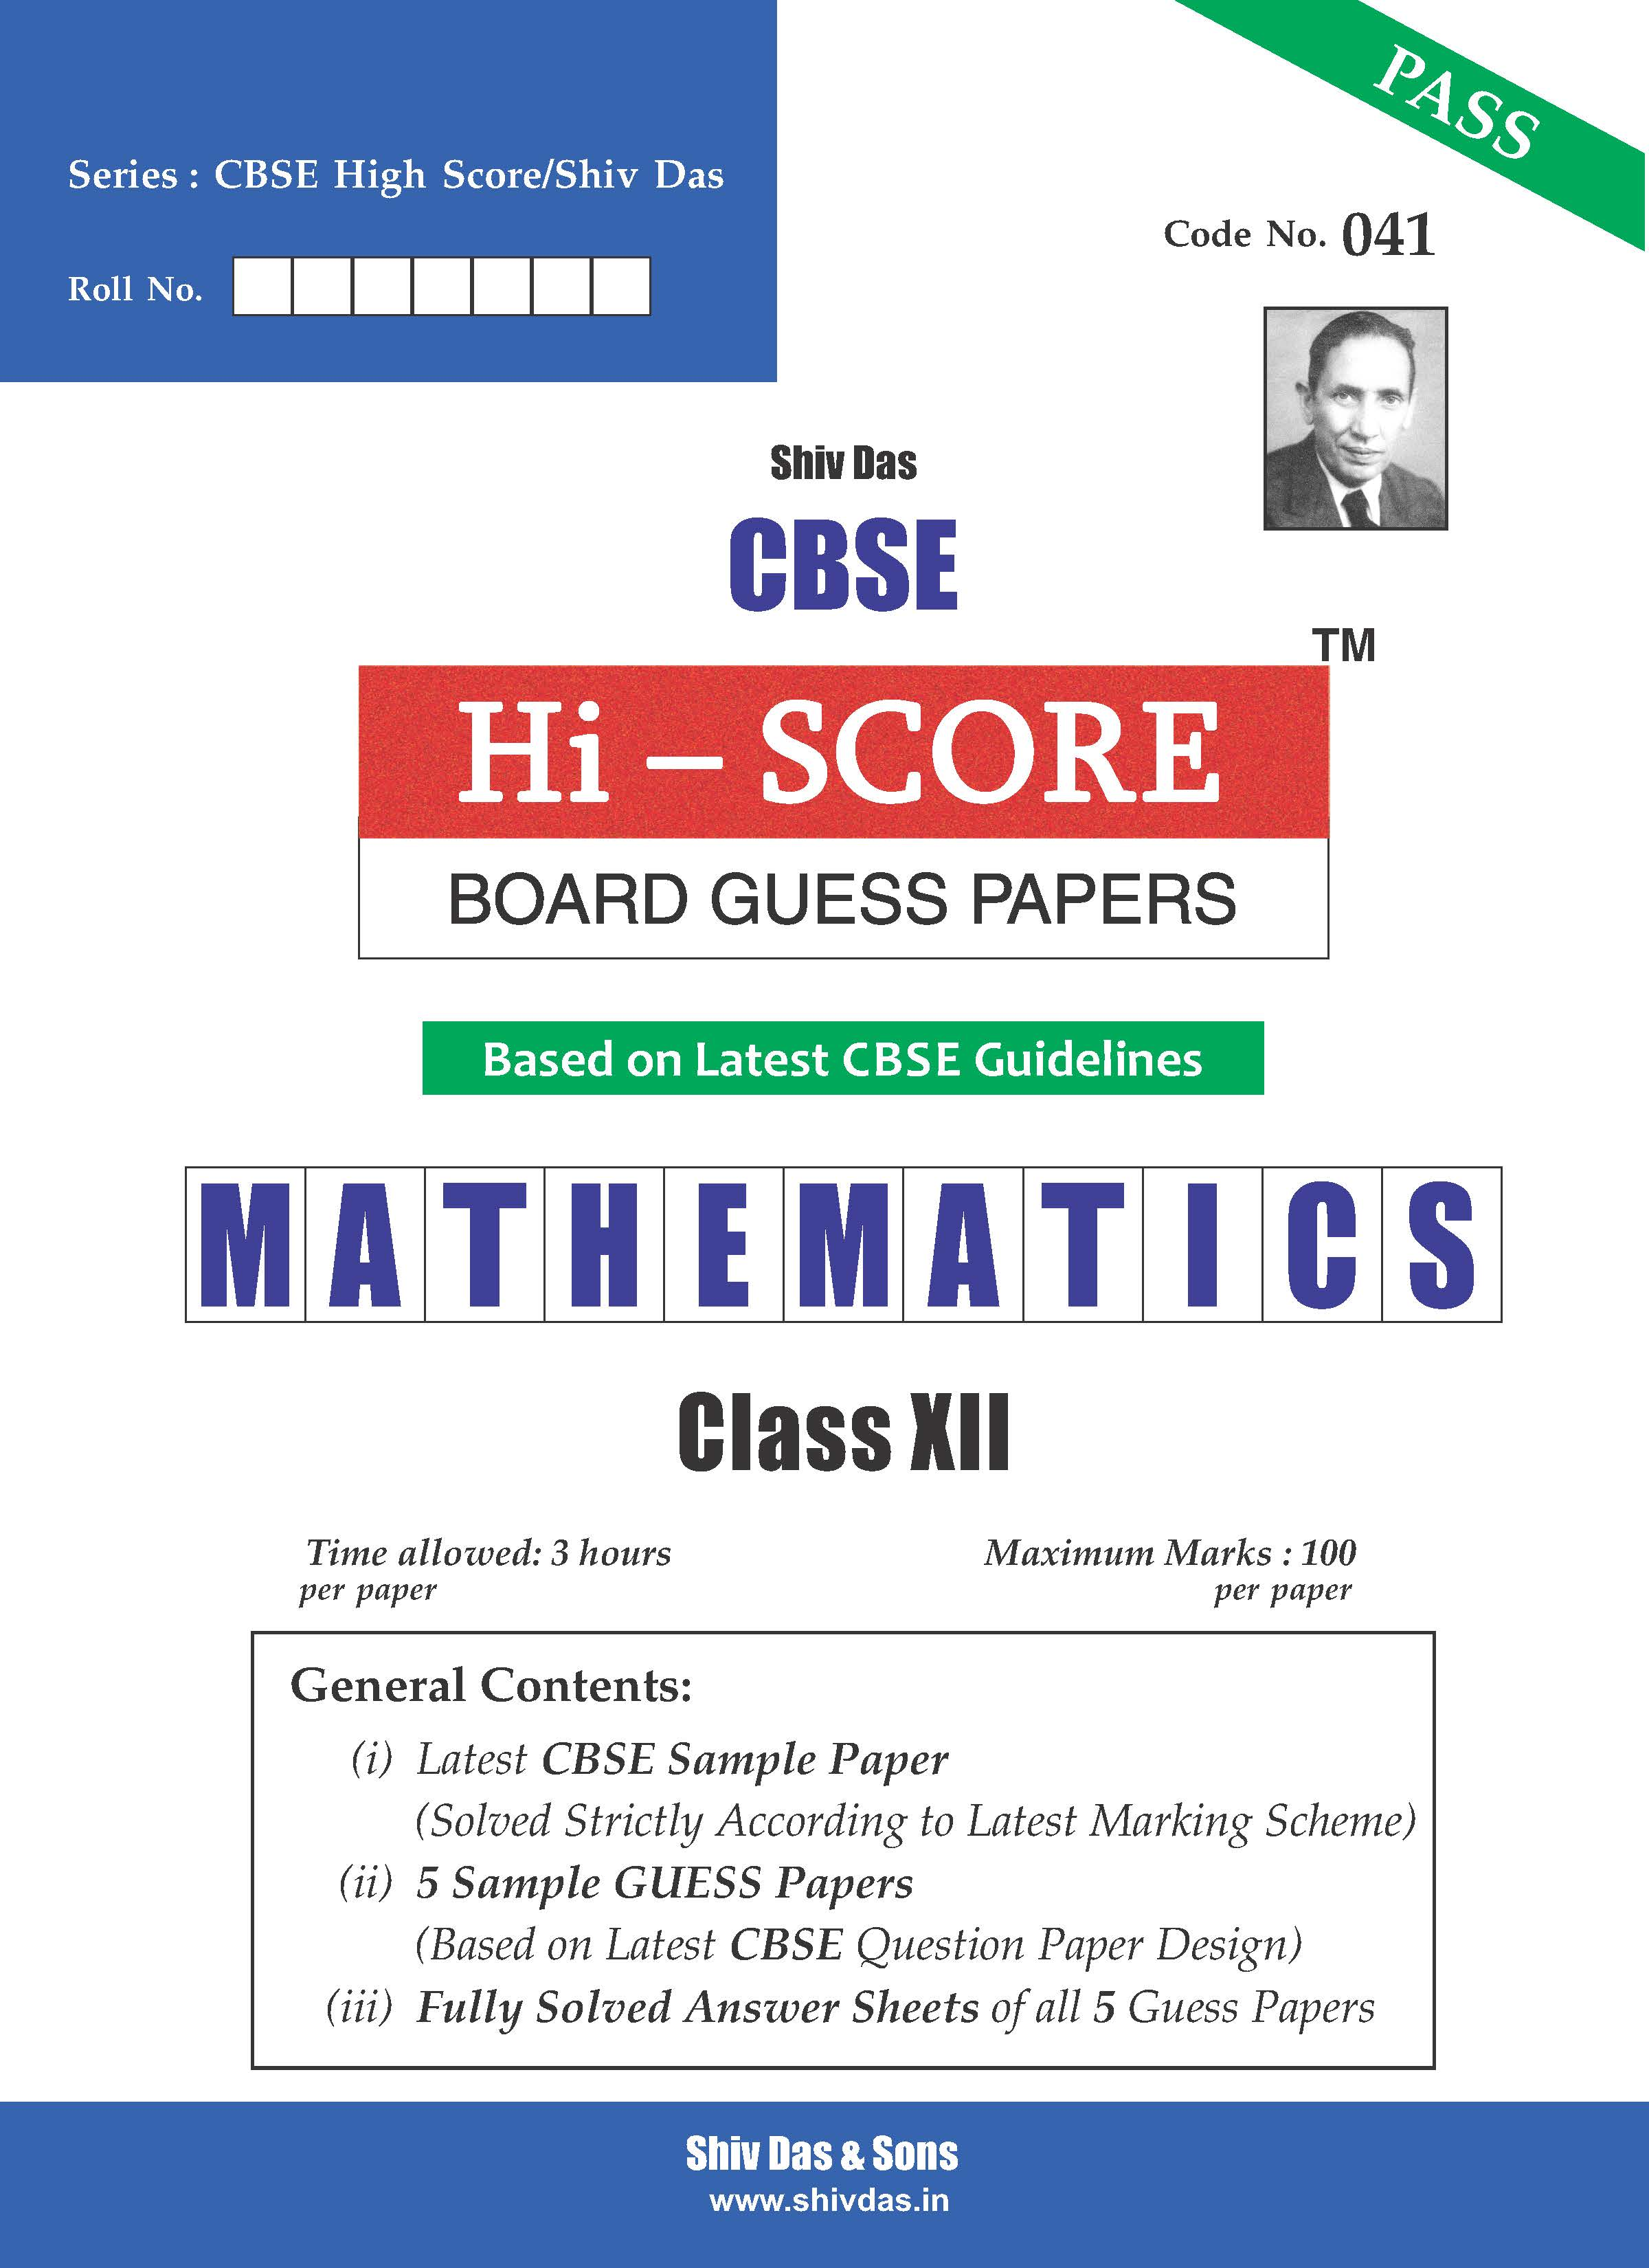 CBSE Hi Score Board Guess Papers for Class Mathematics